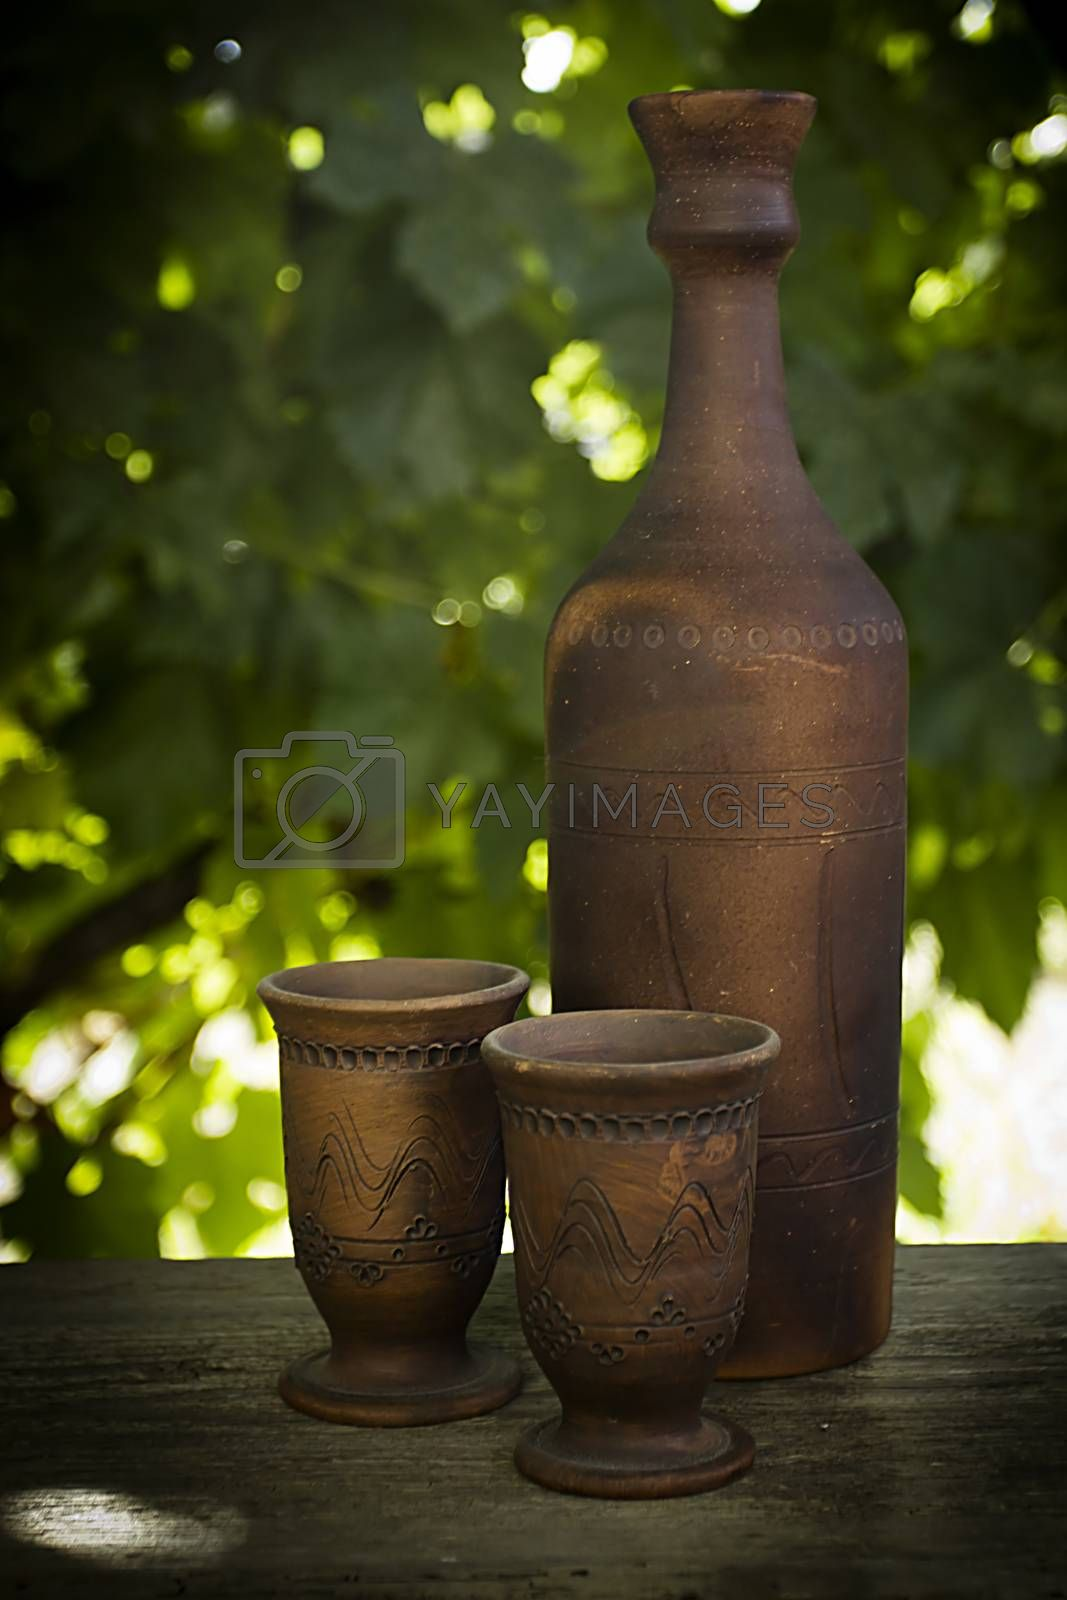 Wine in a clay bottle and glasses outdoors